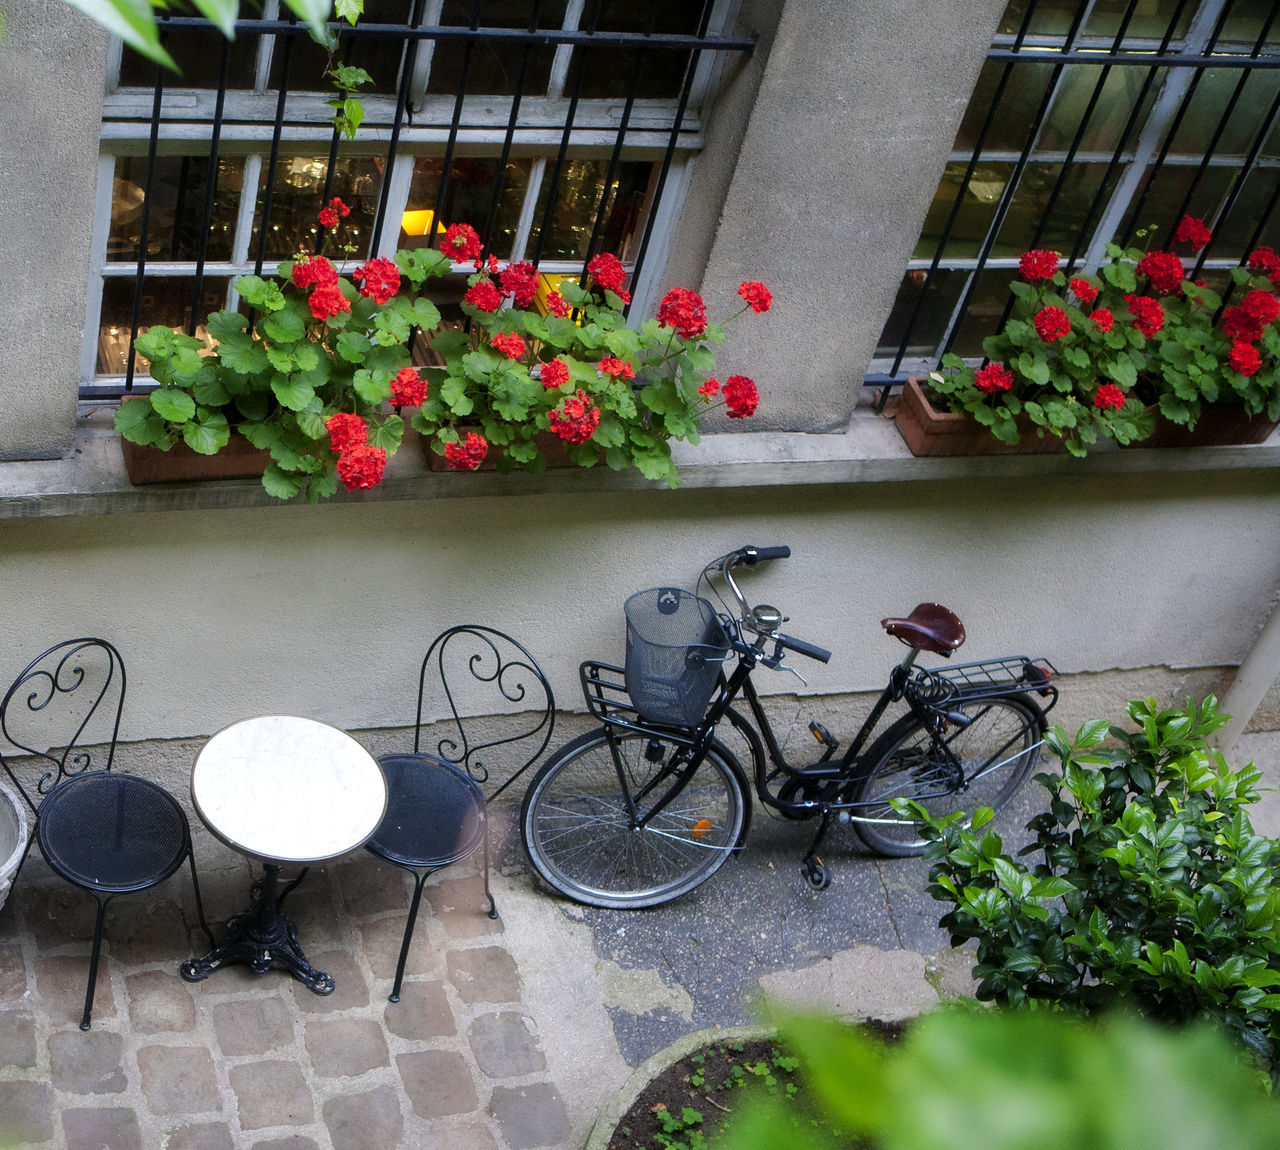 Courtyard in the Marais in Paris, France. Bicycle Bicycles Bike With Basket Cafe Seating Culture Flower Flower Pot Geraniums Paris Je T Aime Paris Scene Paris, France  Plant Potted Plant Red Flowers Wall - Building Feature Celebrate Your Ride